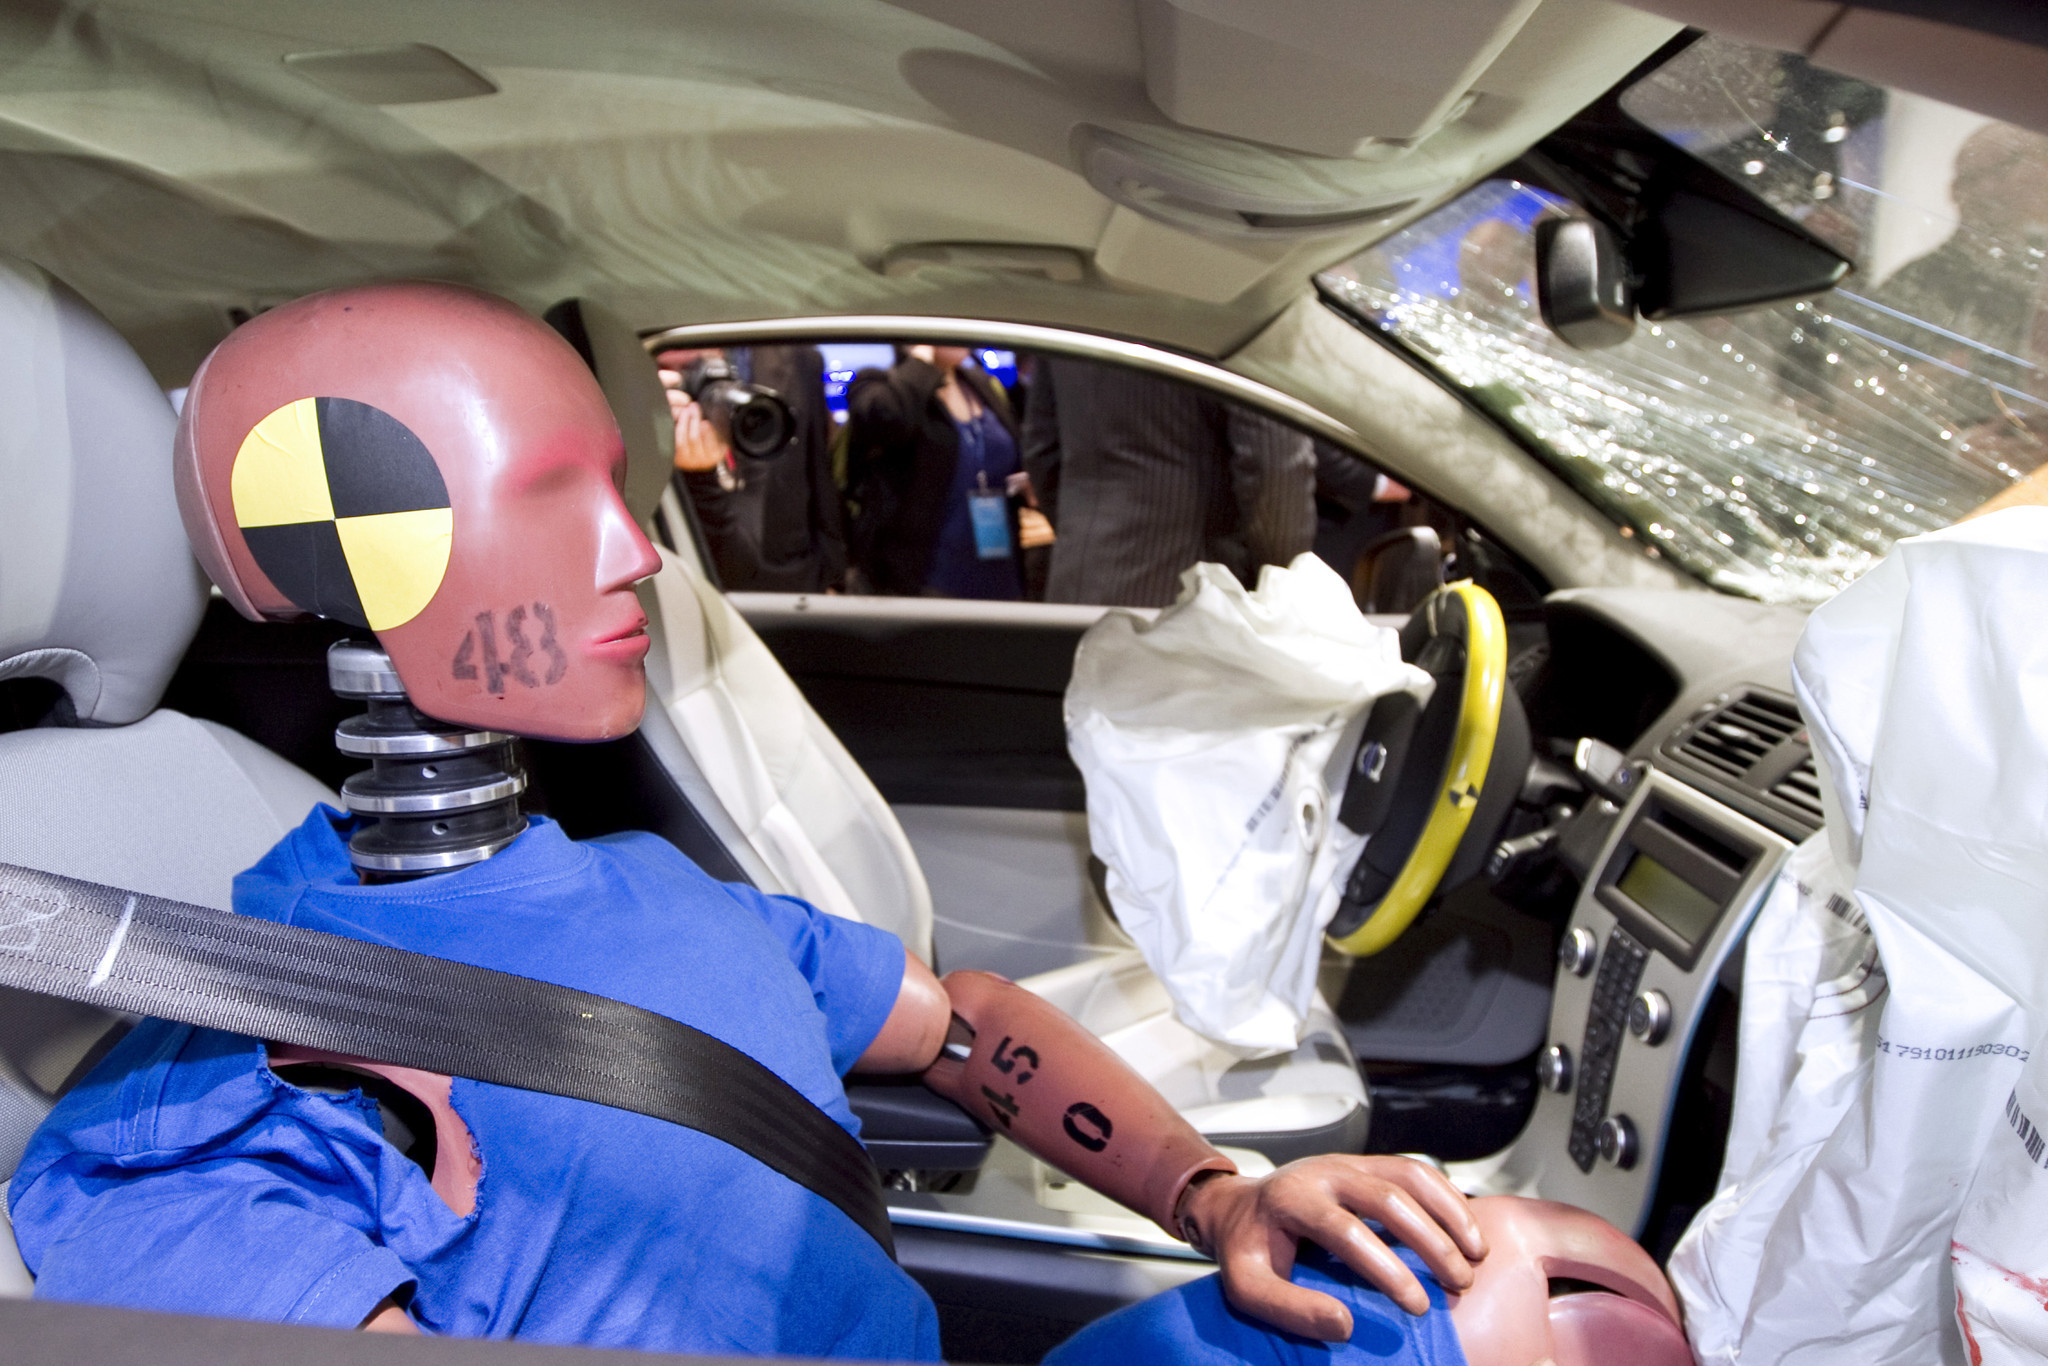 Crash-test dummies' next test: The back seat - Chicago Tribune